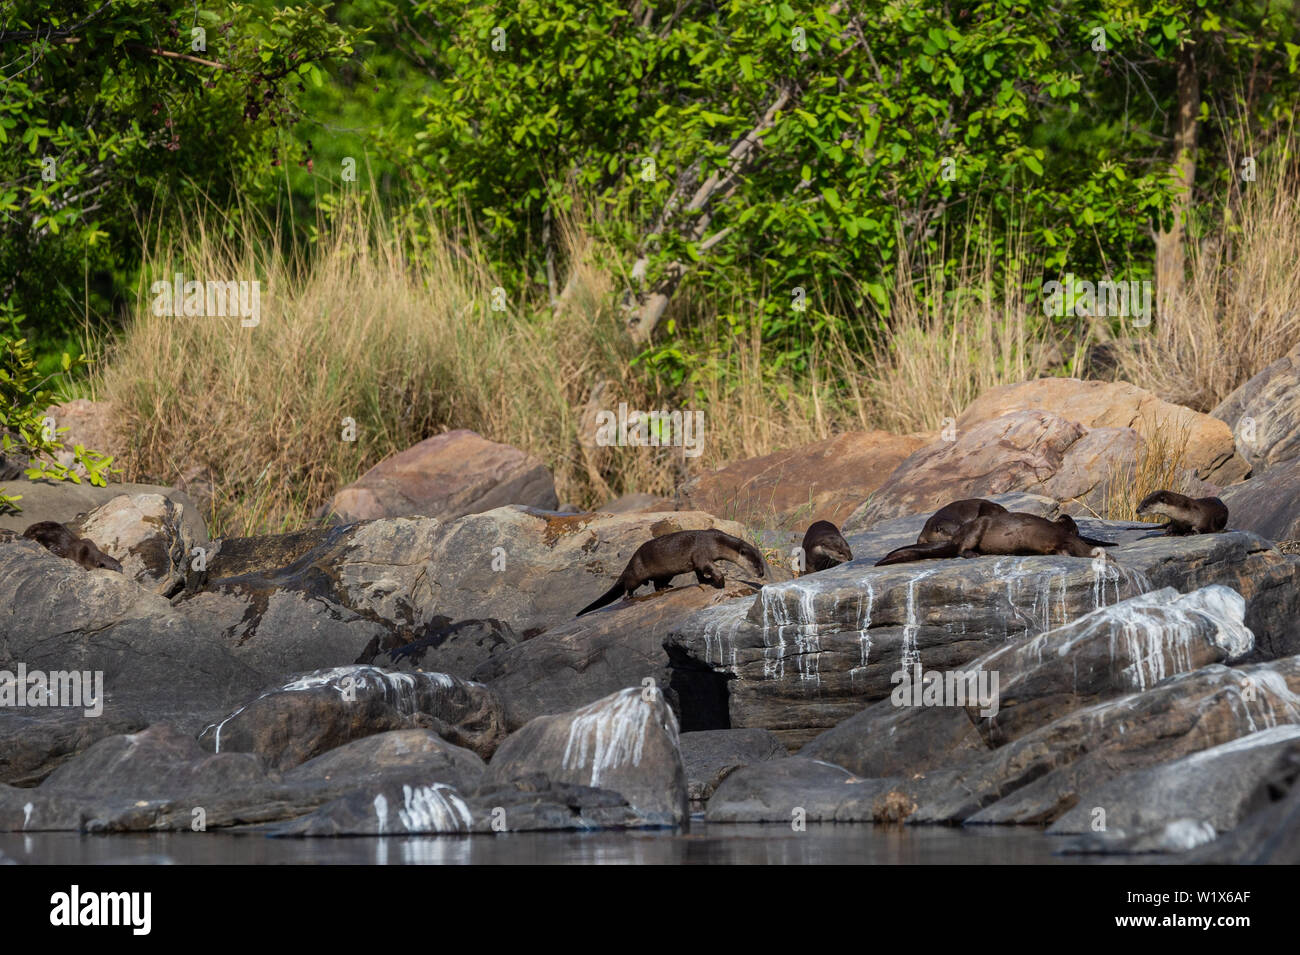 Smooth-coated otter (Lutrogale pers) family basking in sun on rocks after taking dip in water of chambal river at rawatbhata, kota, rajasthan, india - Stock Image